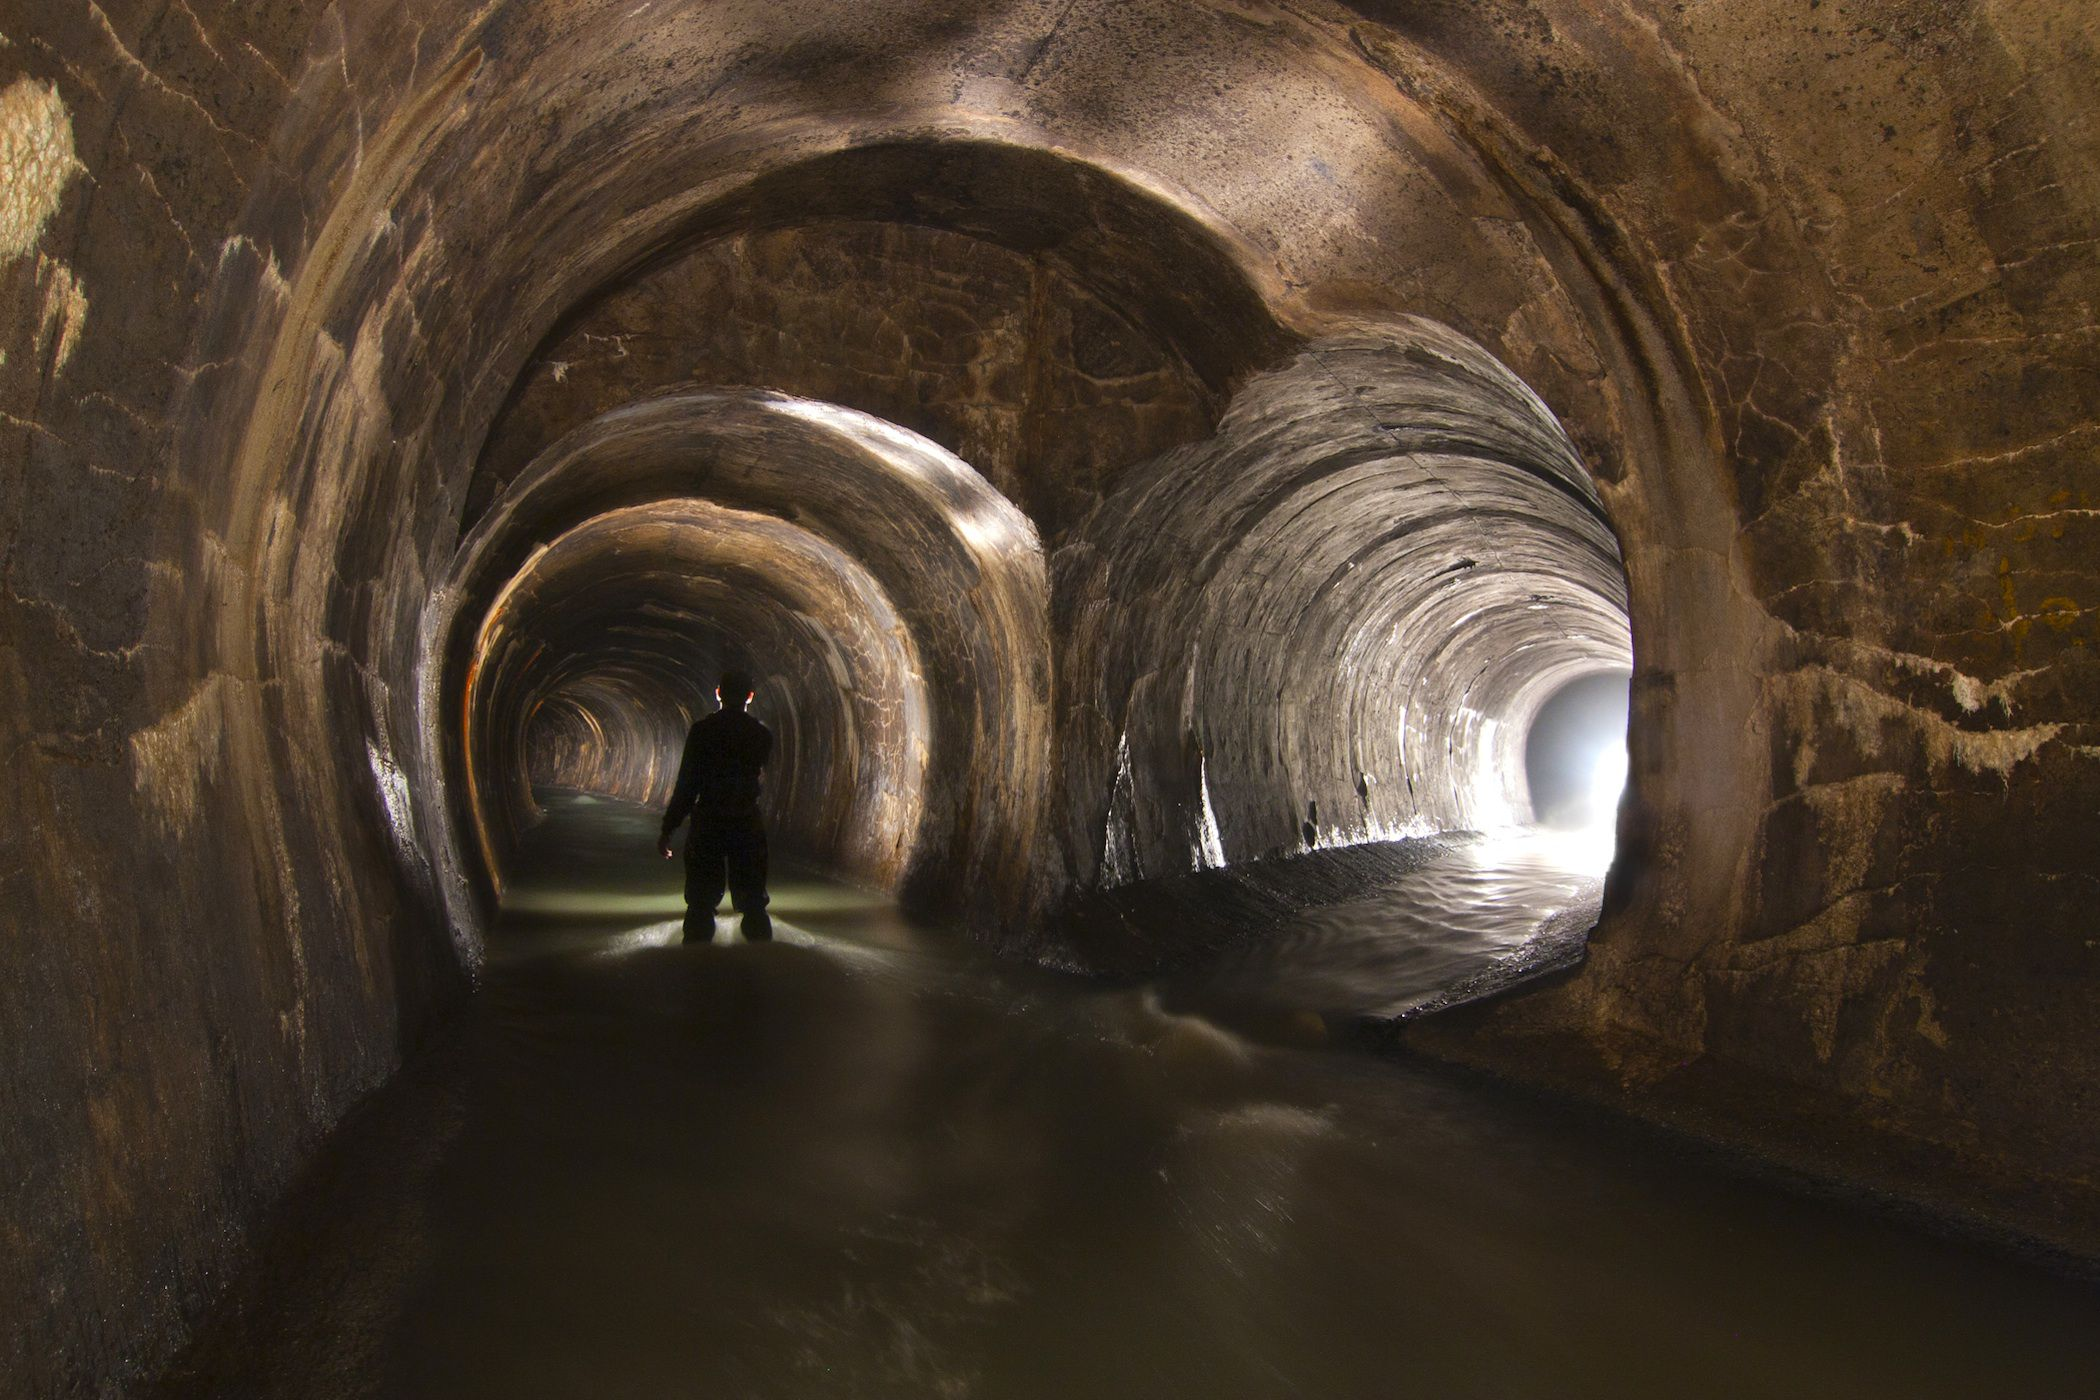 Pipe dreams under montreal for Sewage piping system